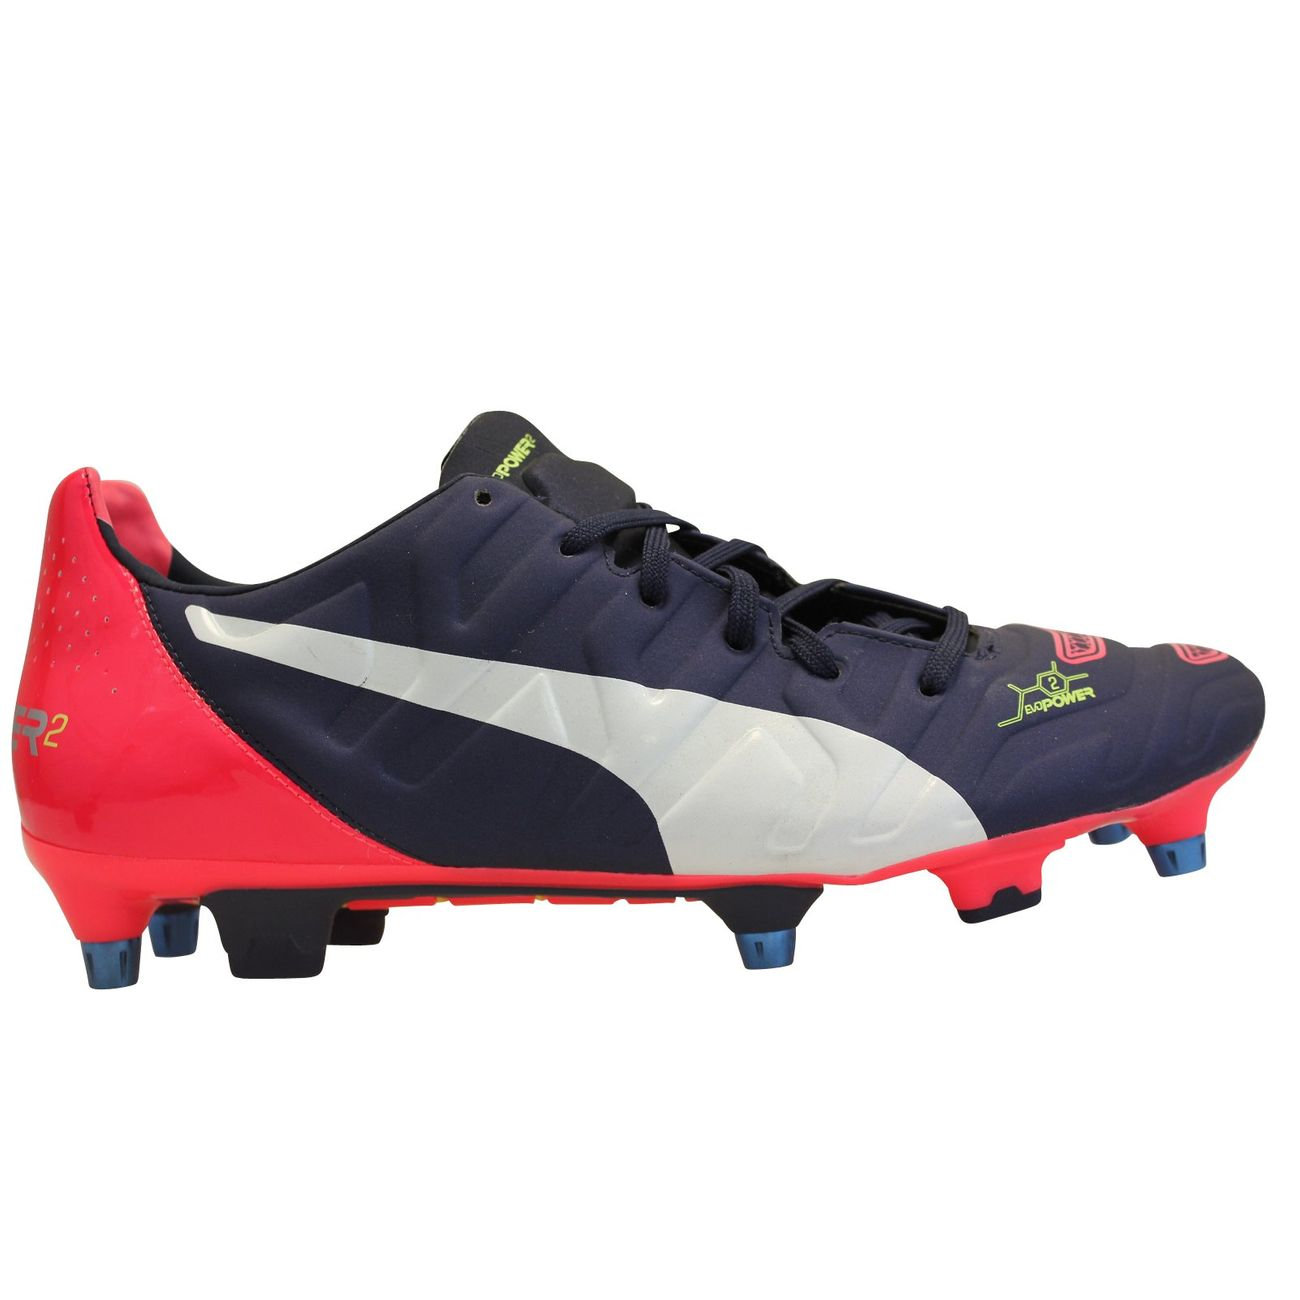 Football Chaussures Sg De Homme 2 Mixed Evopower Puma 2 dQxotCrBhs